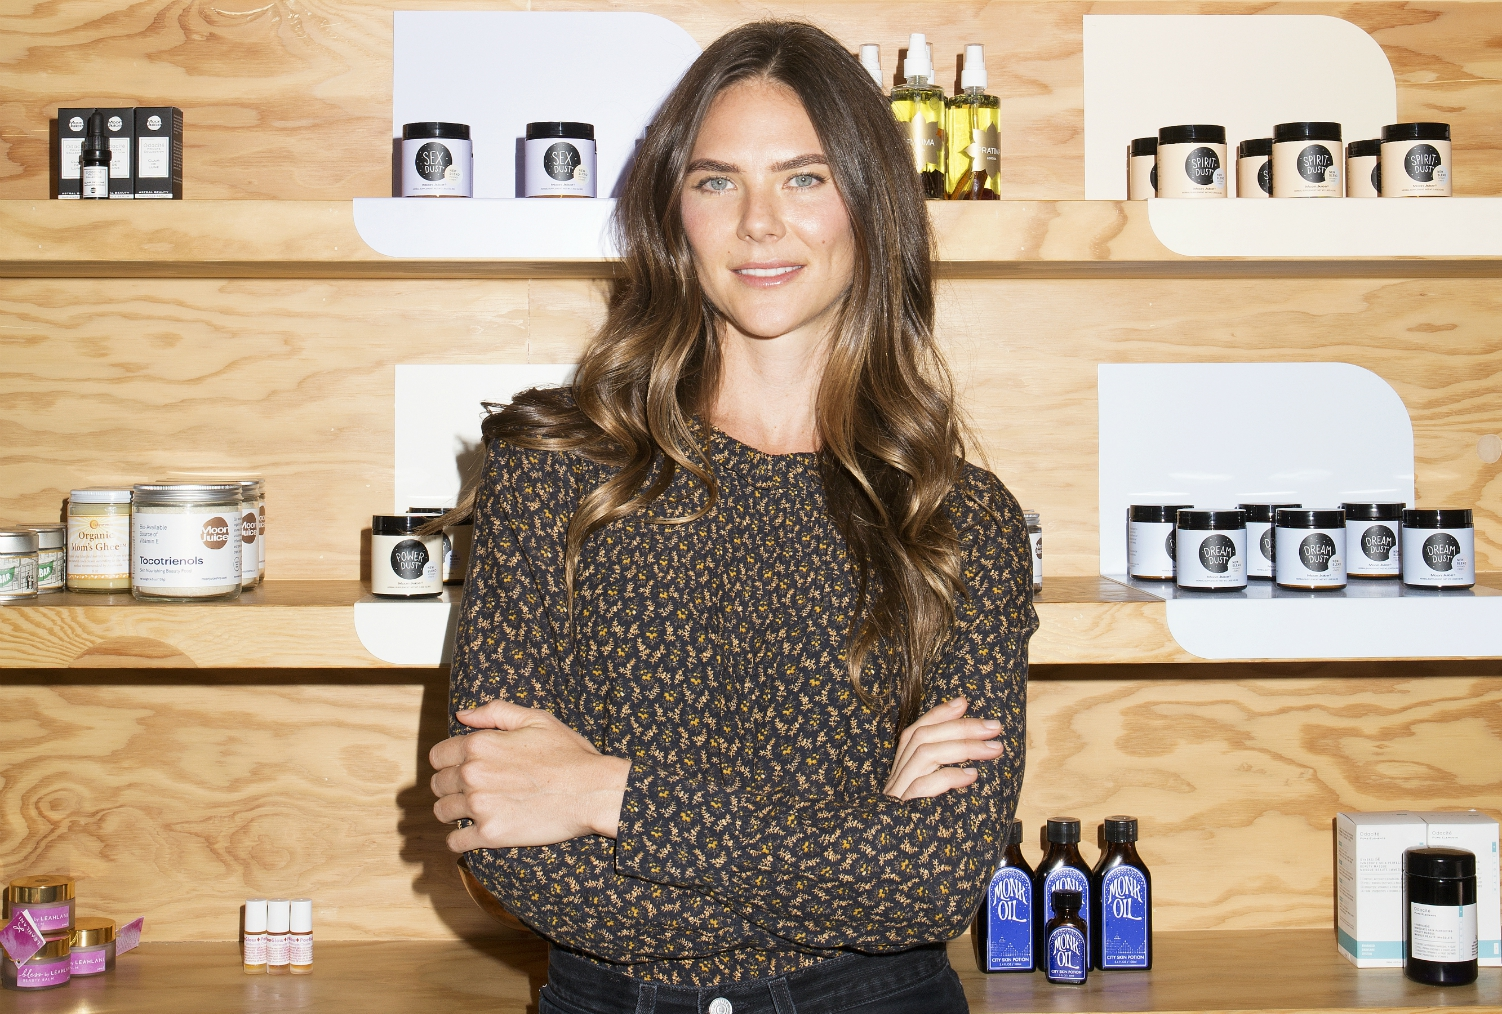 moon juice amanda chantal bacon mushroom serum